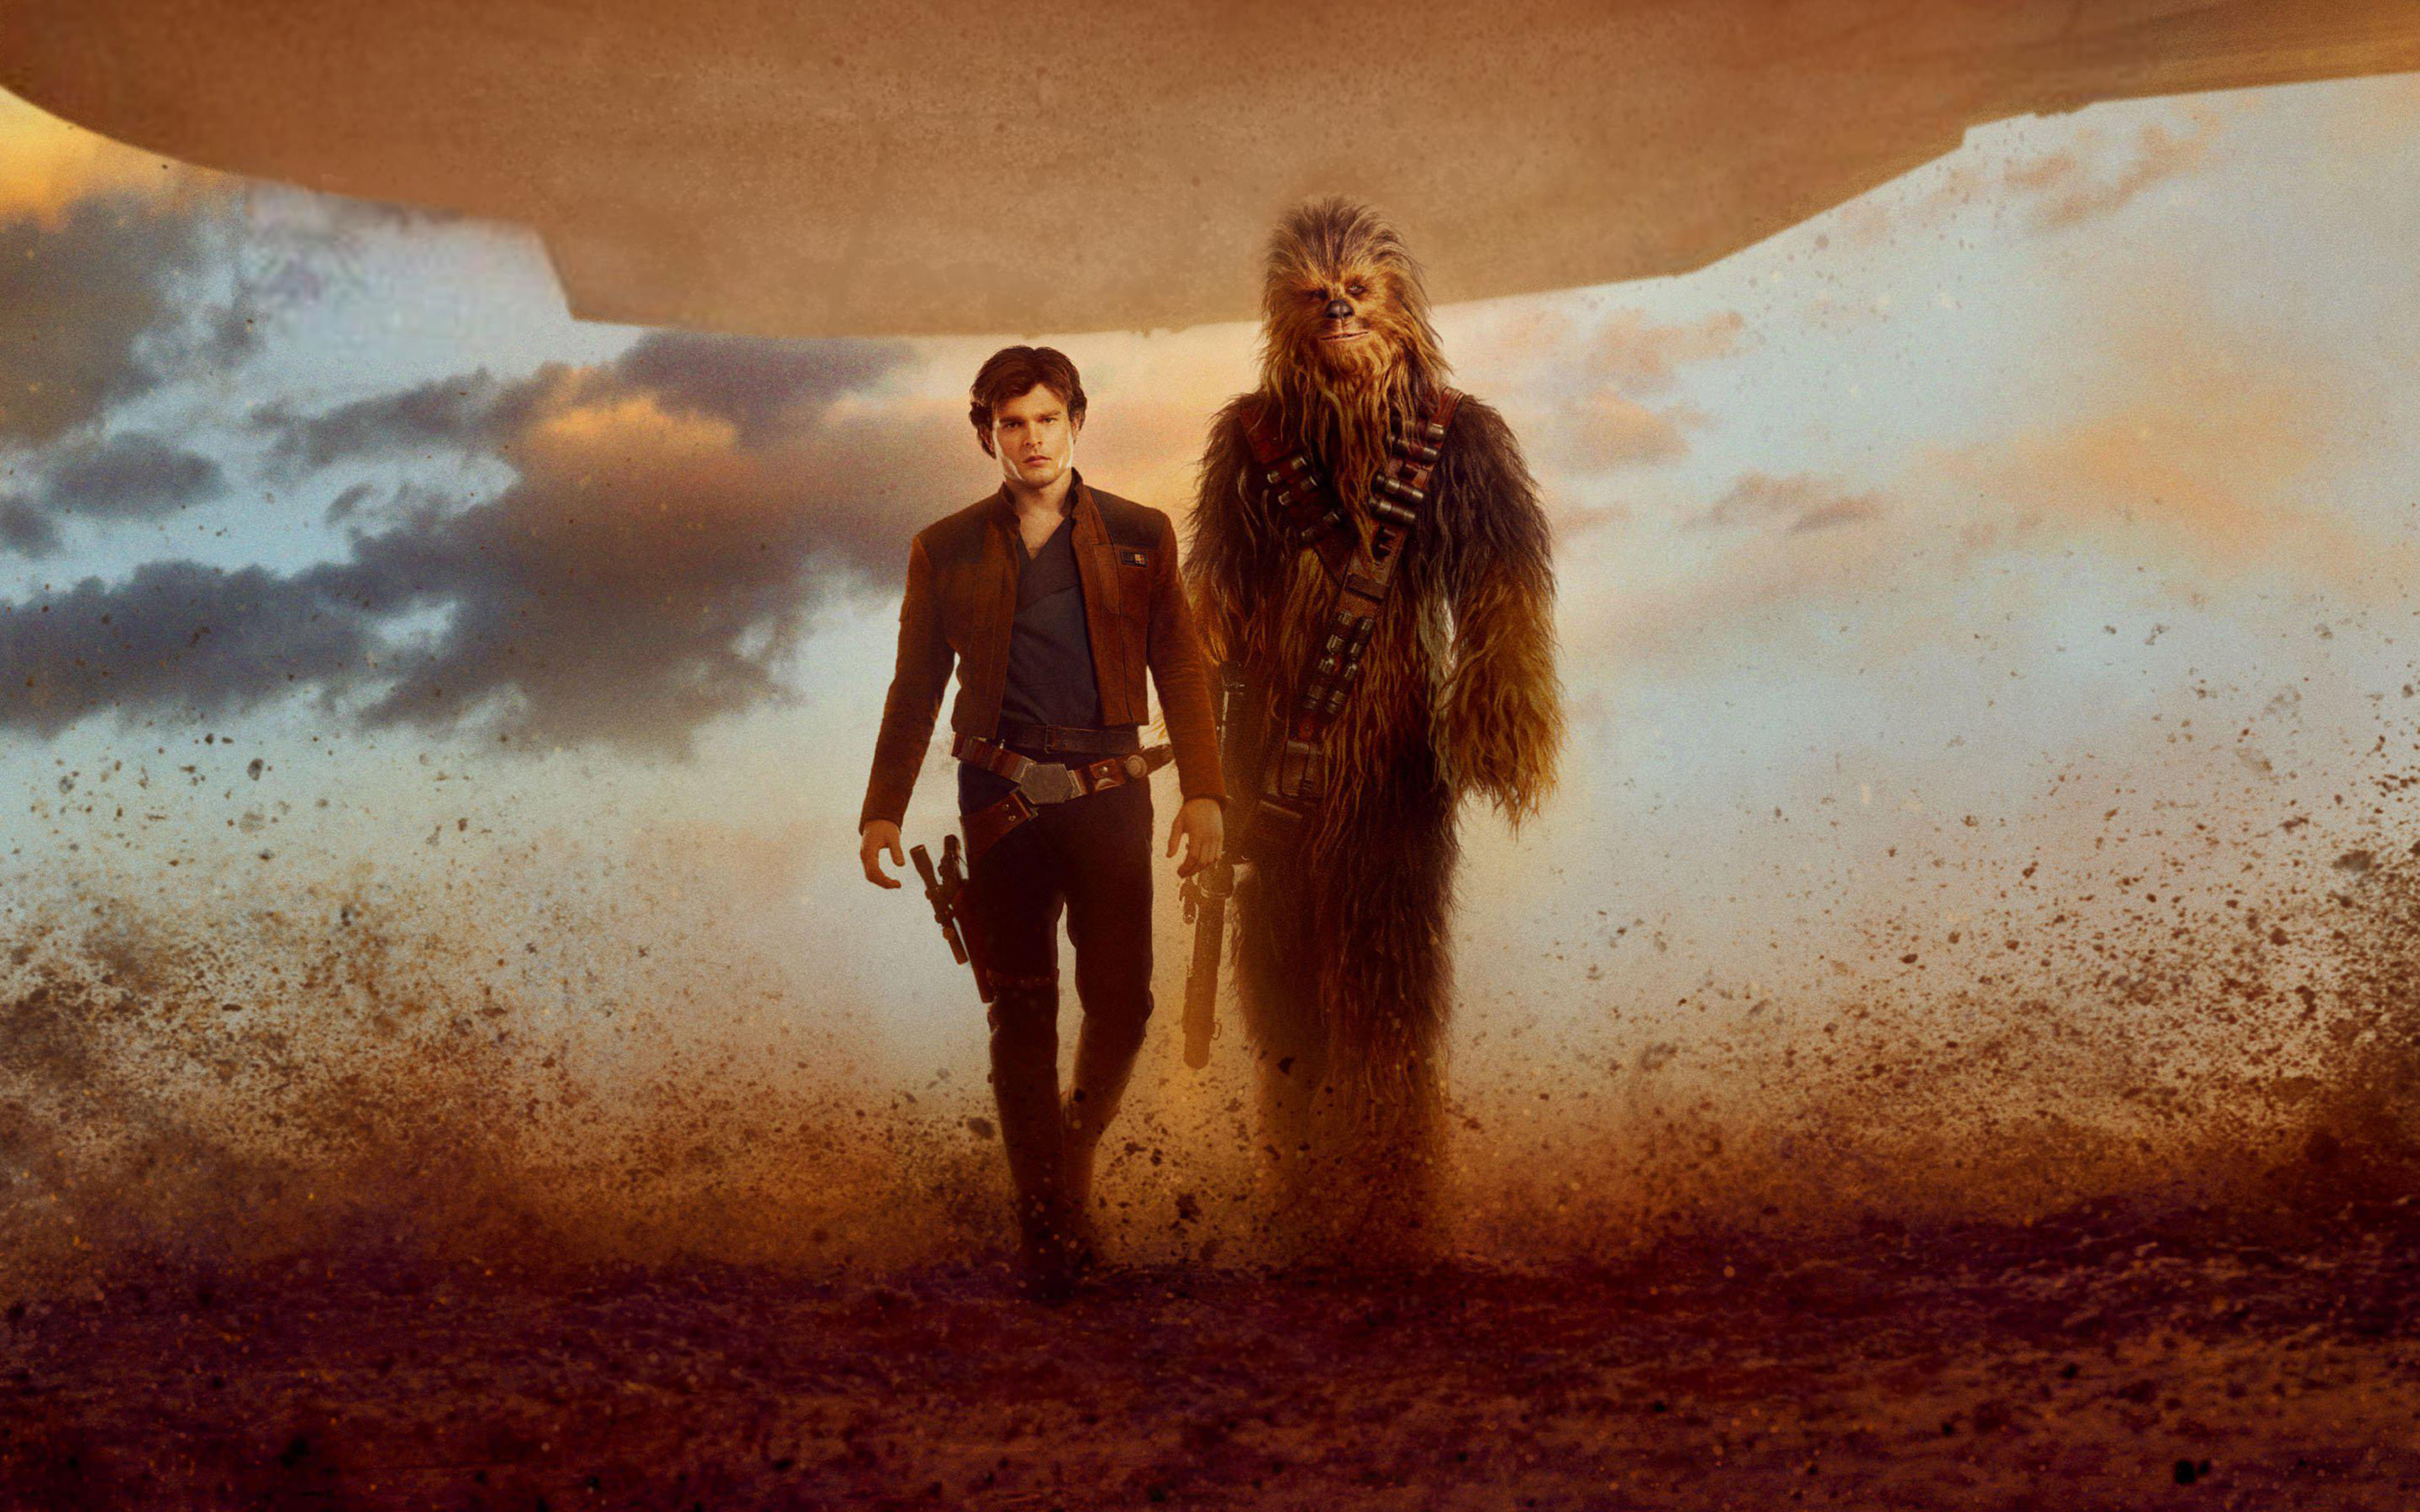 2880x1800 Solo A Star Wars Story Han Solo Chewbacca Wallpapers. Solo A Star Wars  Story Han Solo Chewbacca Wallpapers. Â«Â«